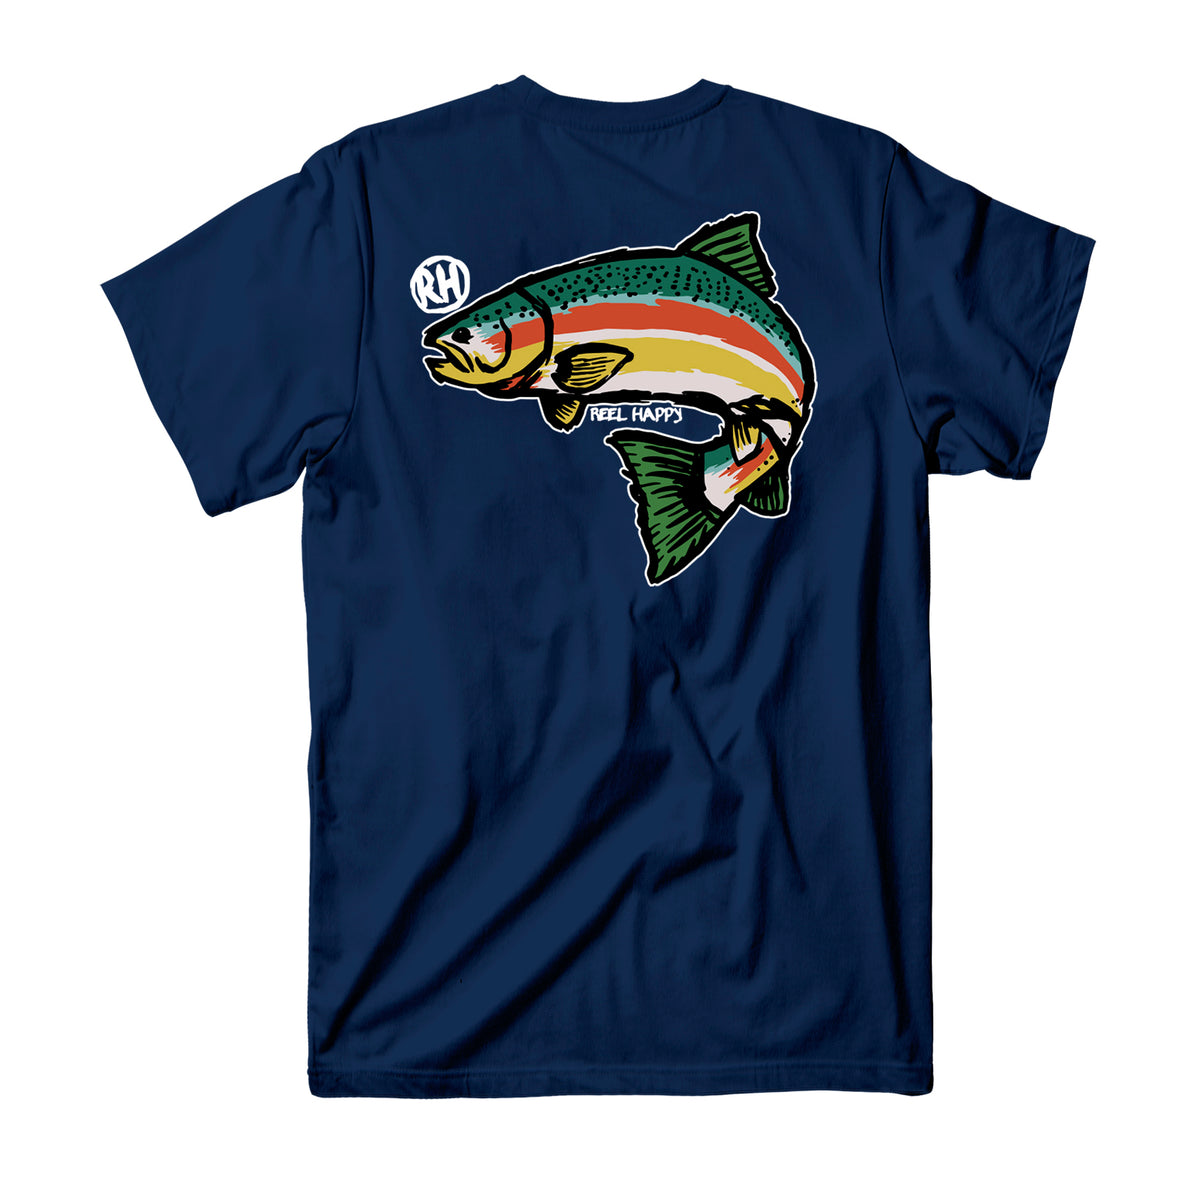 Trout Blender T-Shirt - Navy - Reel Happy Co